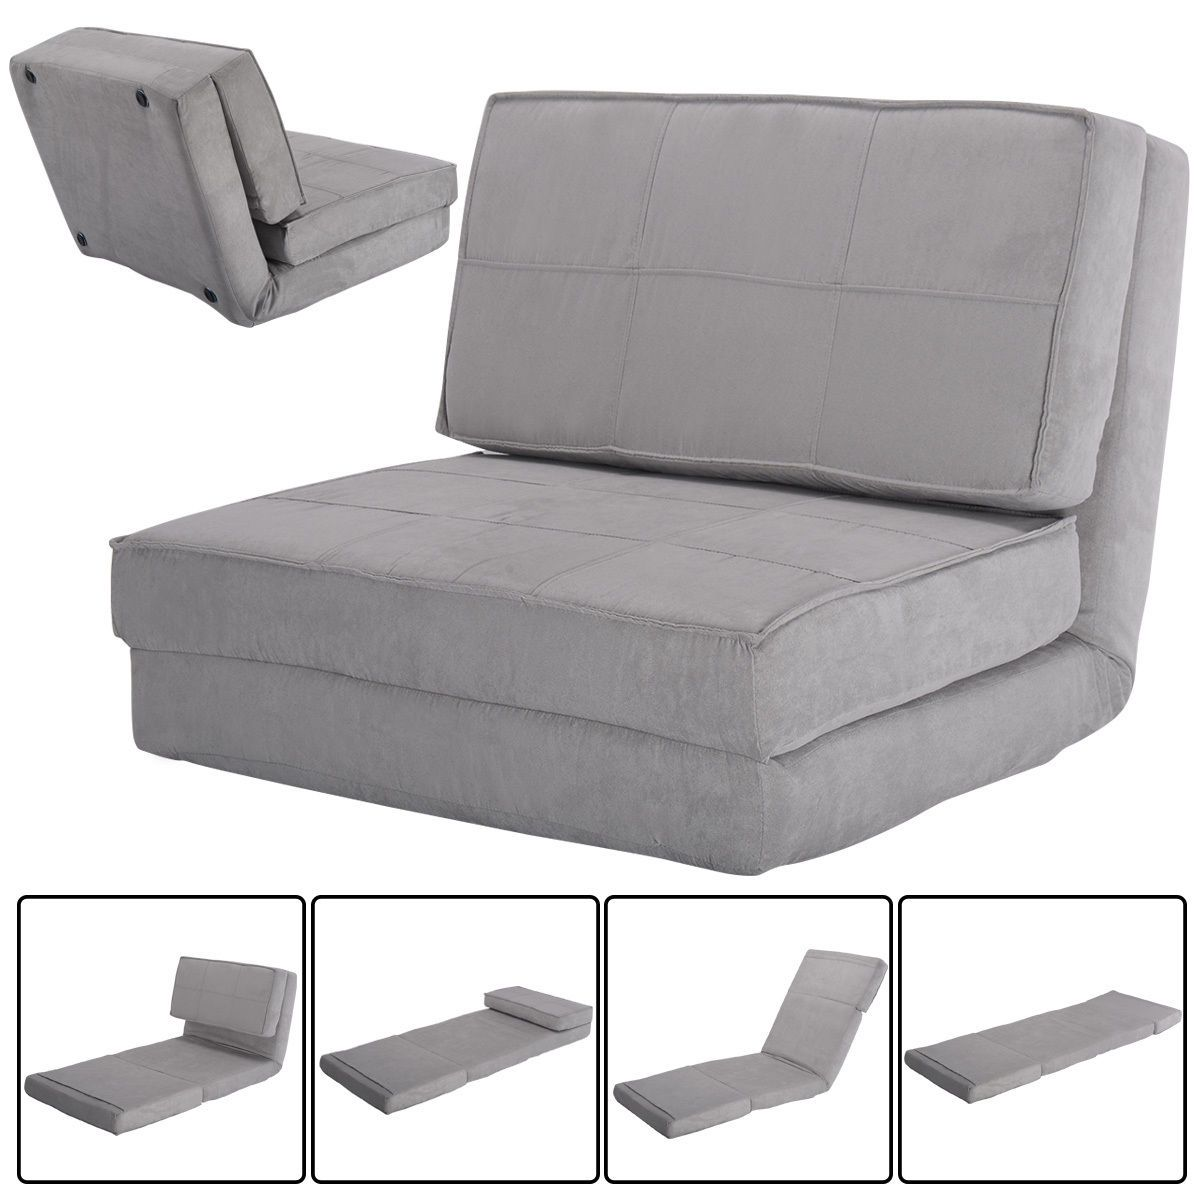 Fold Out Sleeper Chair Convertible Lounger Folding Sofa Sleeper Bed In 2019